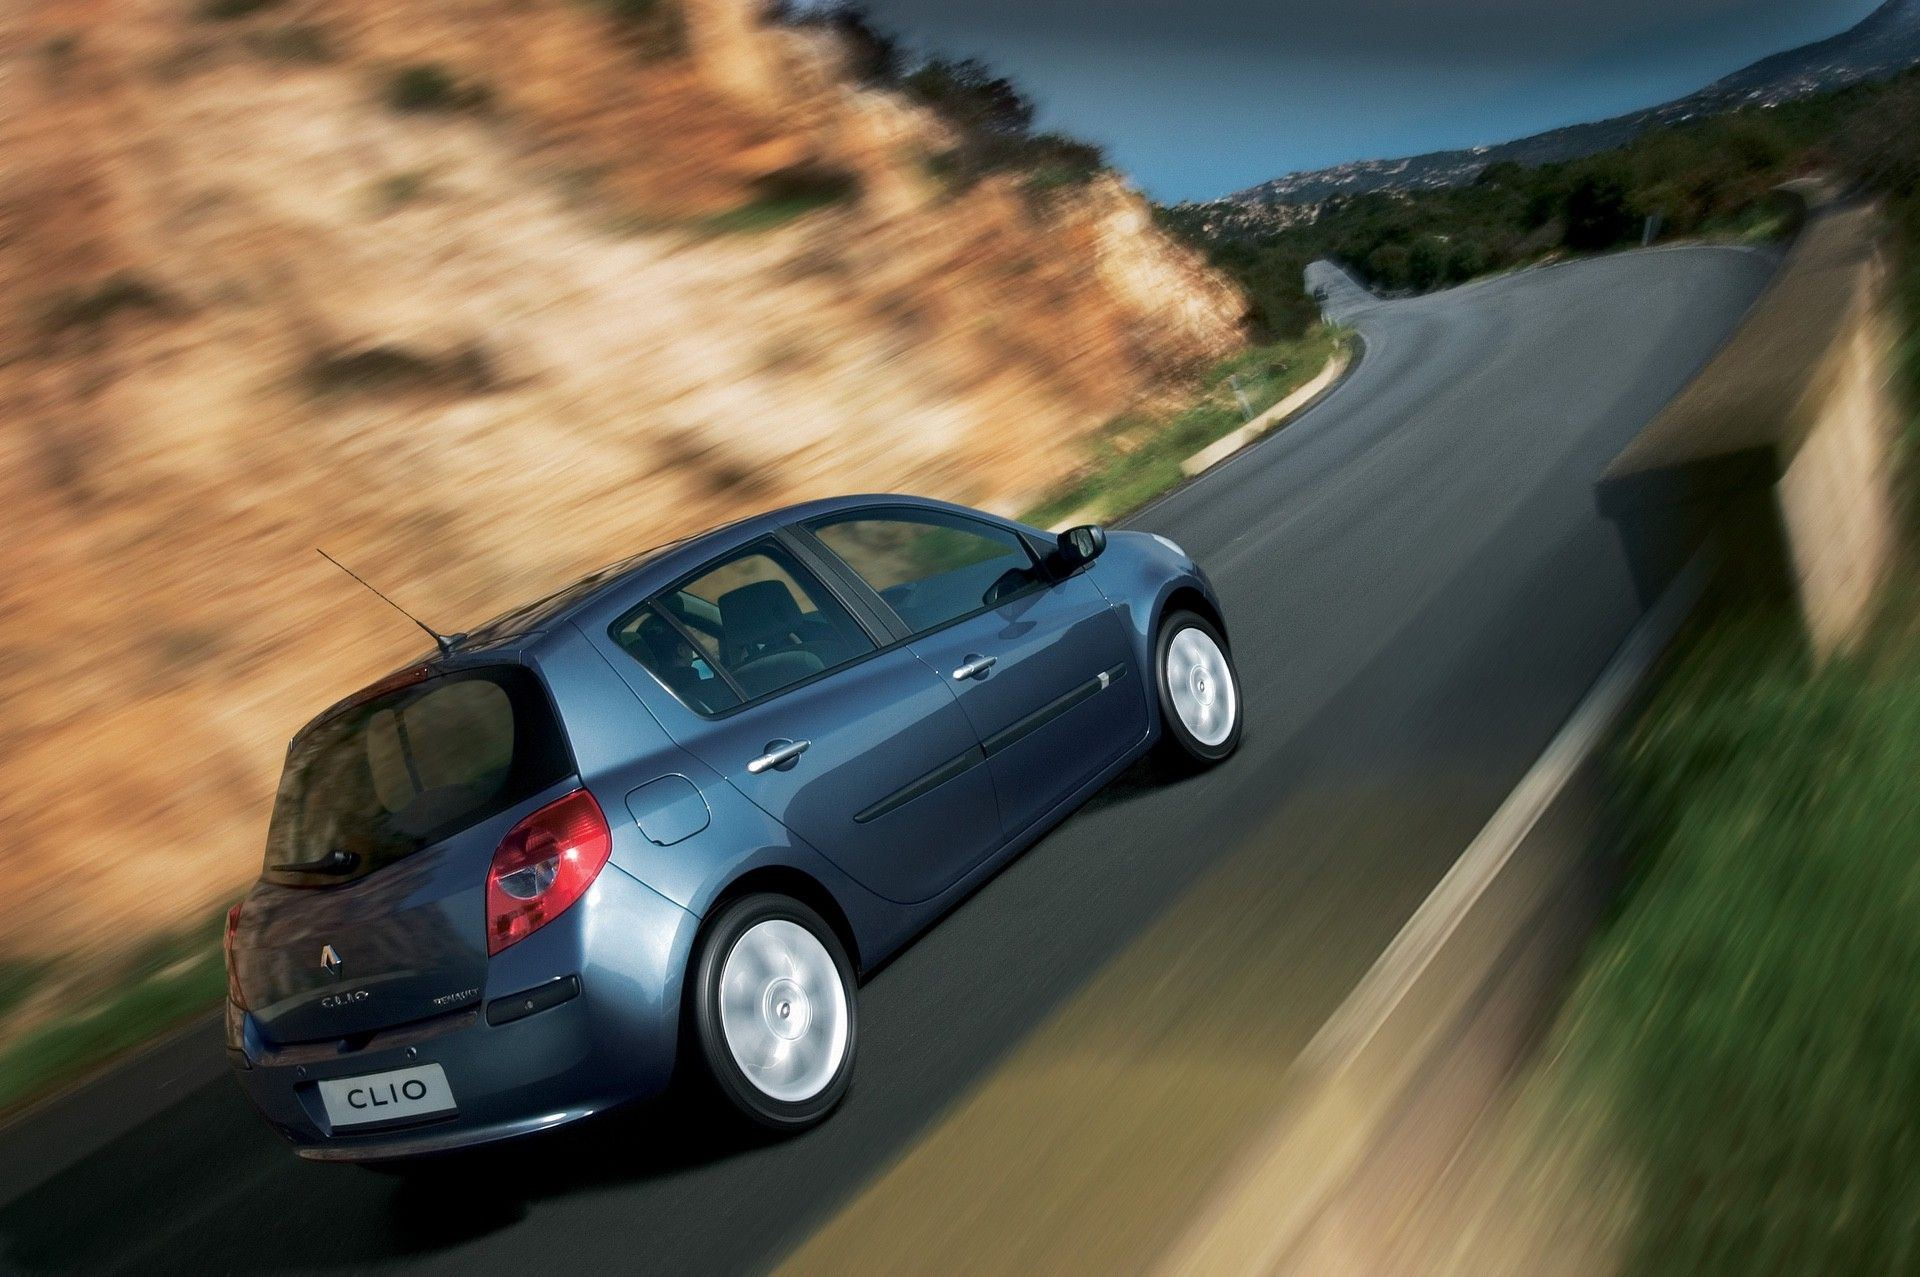 2020-30-years-of-Renault-CLIO-Renault-CLIO-III-2005-2012-1